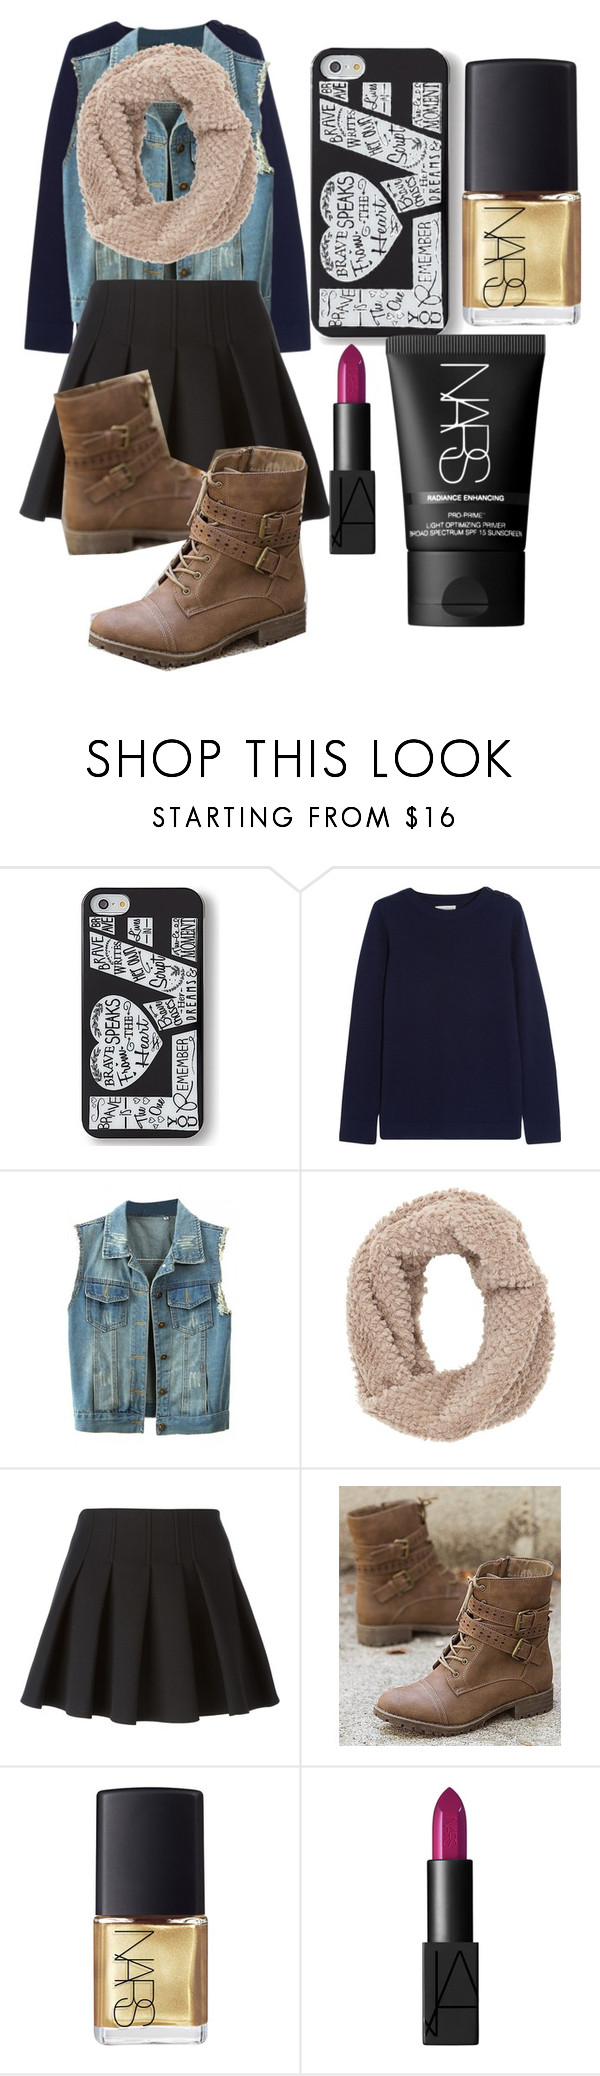 """""""Untitled #311"""" by gigicr ❤ liked on Polyvore featuring Keds, Chinti and Parker, Charlotte Russe, Alexander Wang, NARS Cosmetics, women's clothing, women's fashion, women, female and woman"""